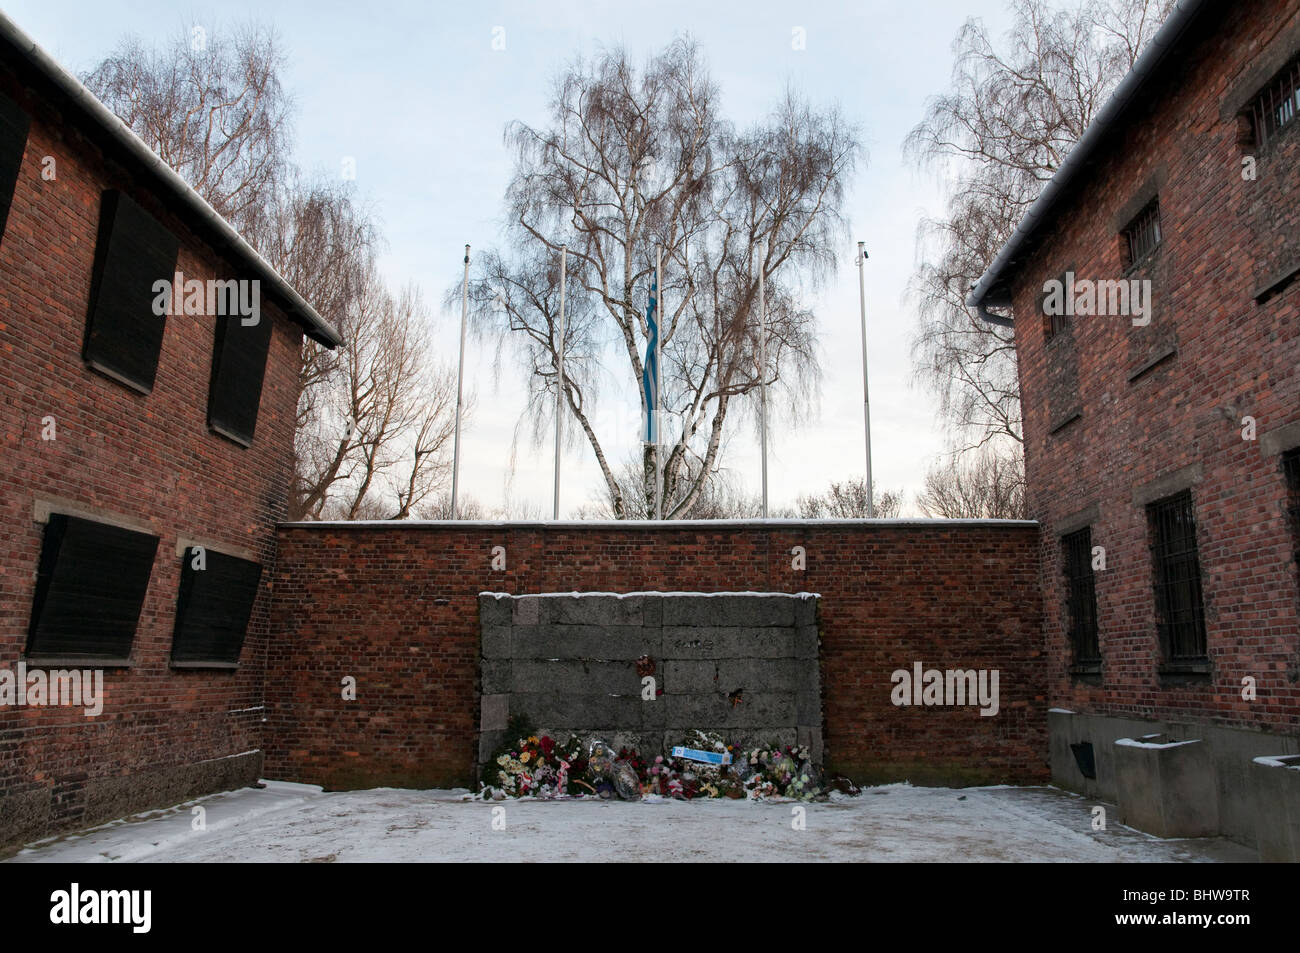 Auschwitz Concentration Camp Museum In Stock Photos  Auschwitz - Concentration camp museums in usa